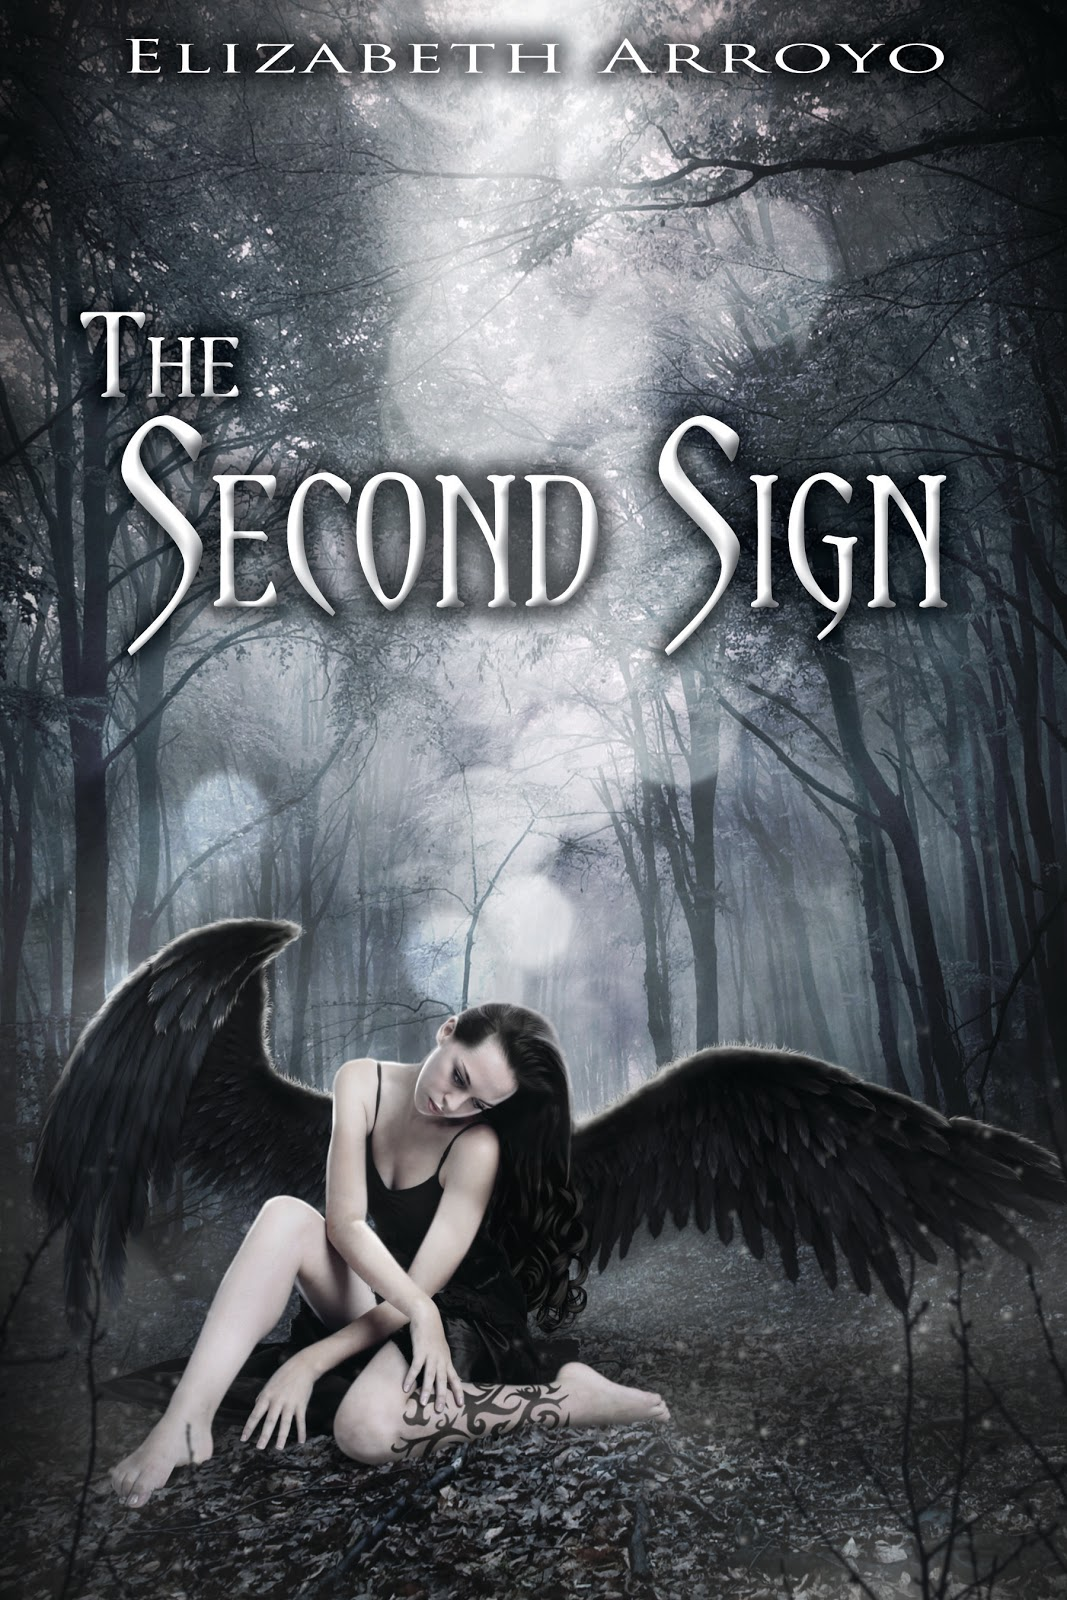 http://www.whatsbeyondforks.com/2013/03/the-second-sign-tour-review-giveaway-of.html